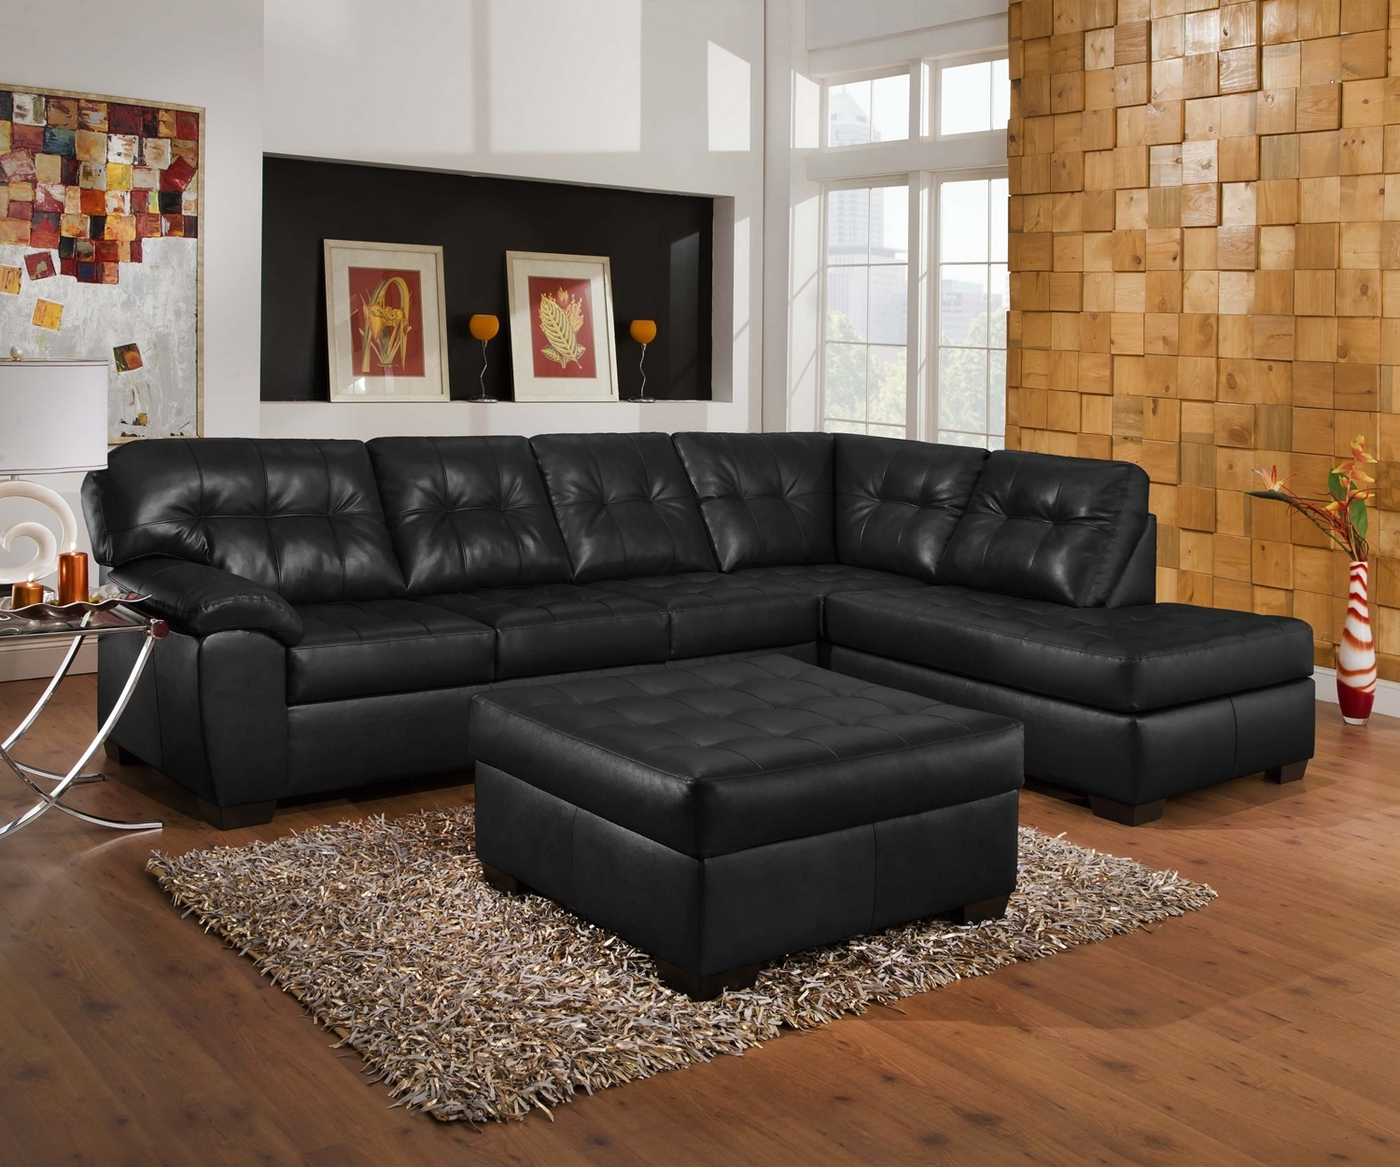 Well Liked 2Pc Connel Modern Chaise Sectional Sofas Black Throughout Soho Contemporary Onyx Leather Sectional Sofa W/ Left Chaise (View 10 of 25)